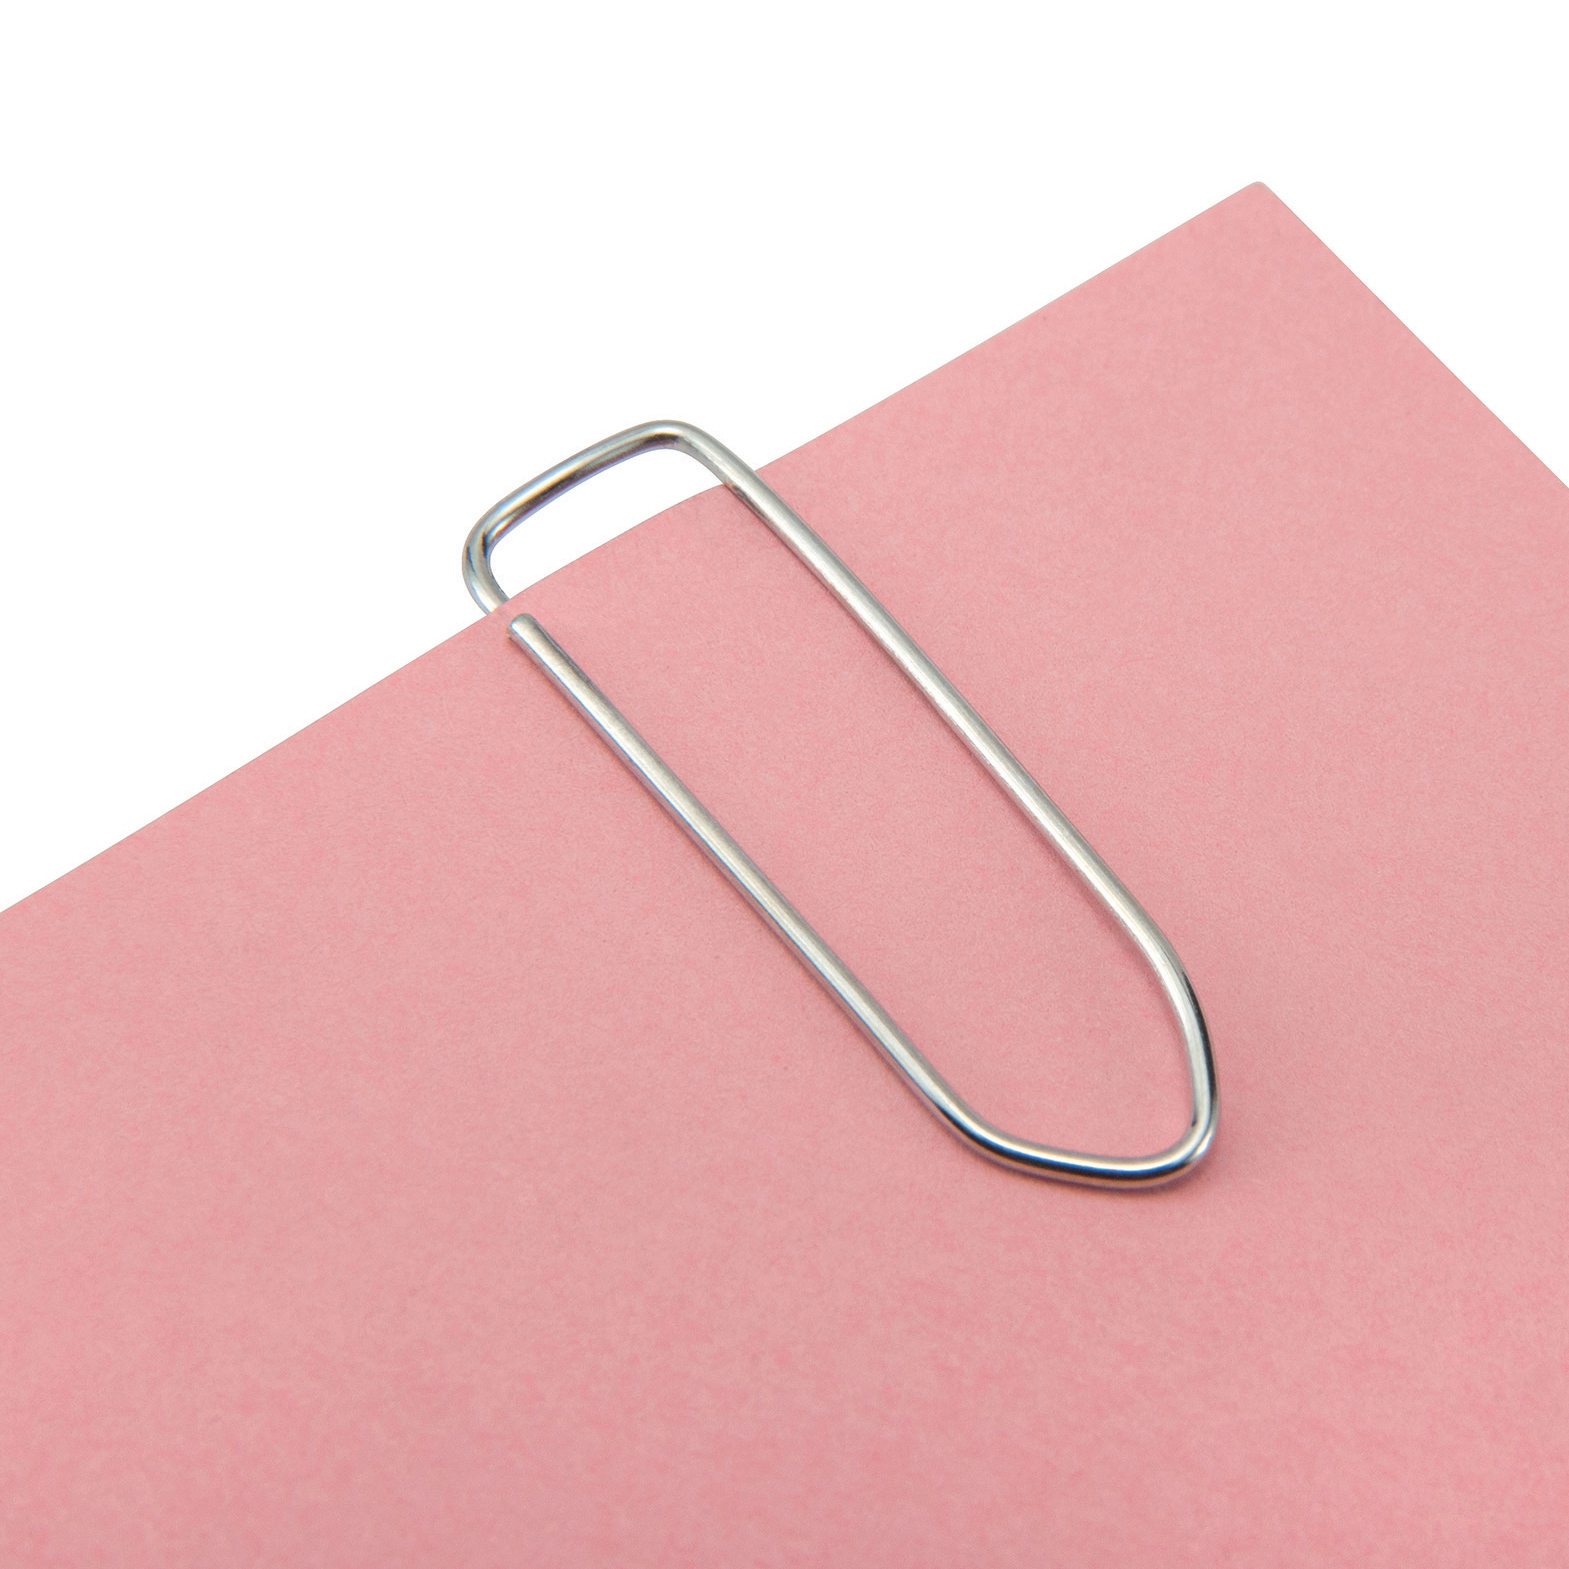 5 Star Office Paperclips Large Non-tear Clip Length 33mm Polished Steel Pack 1000